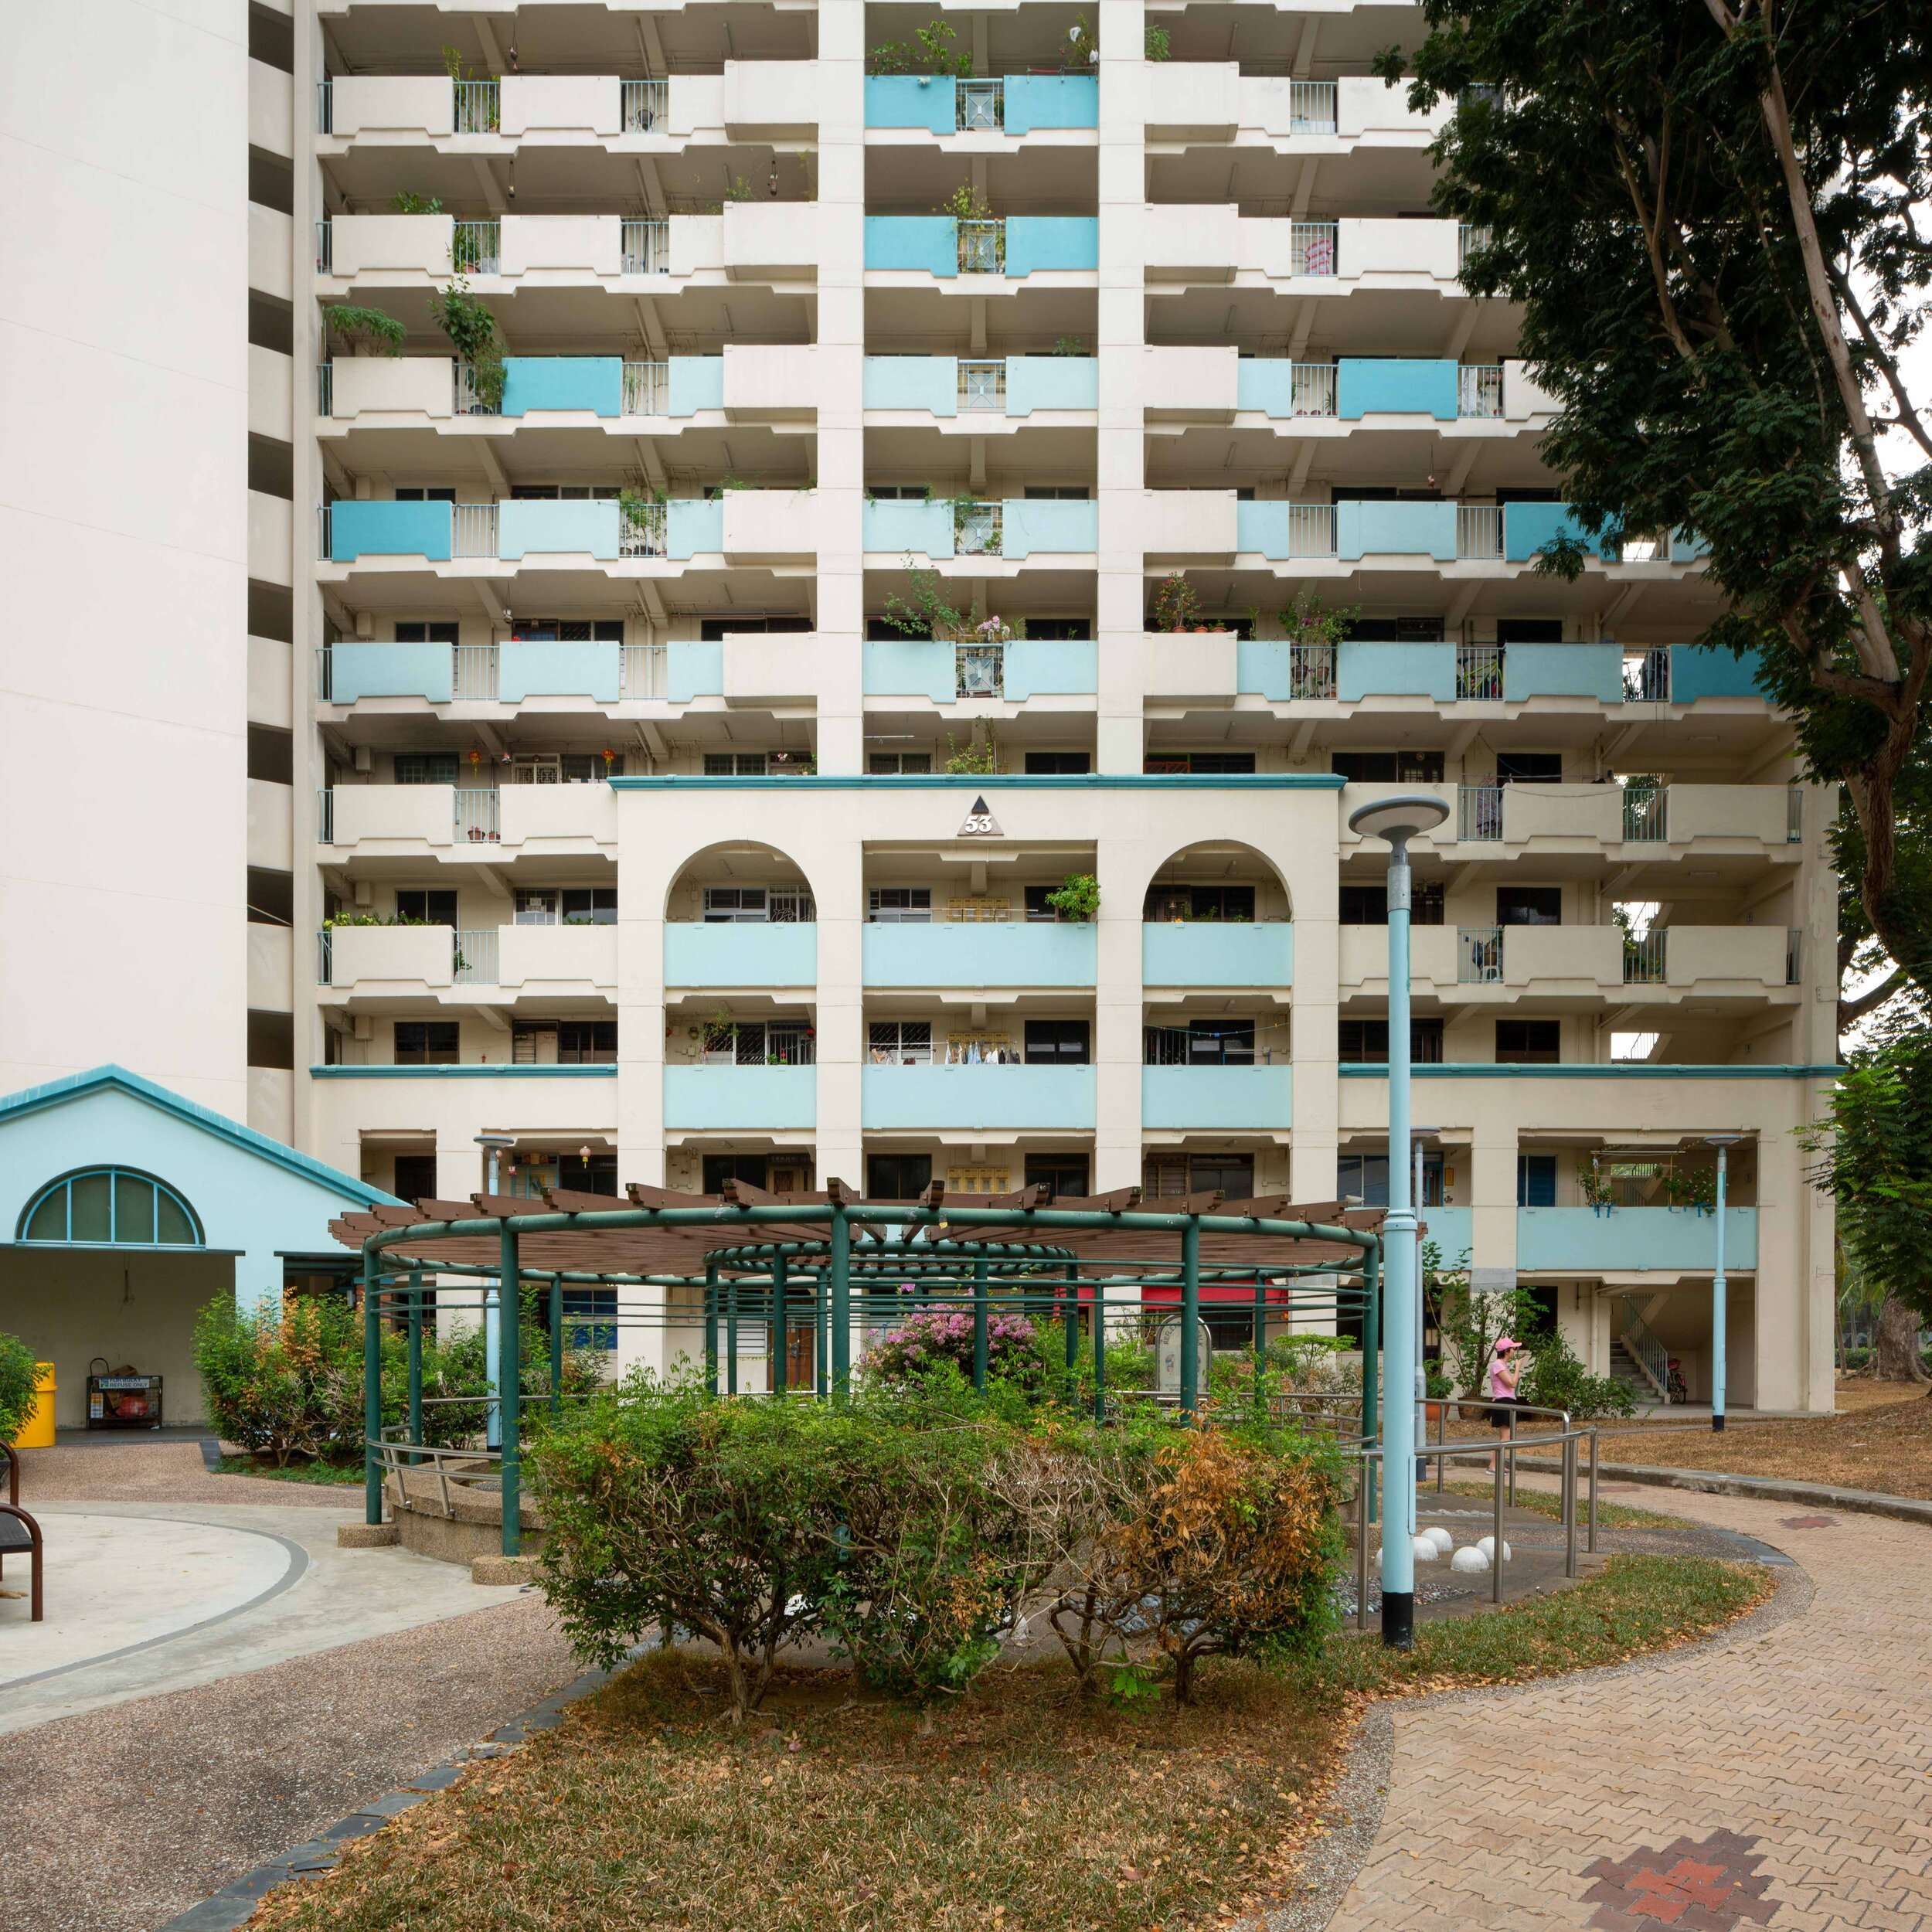 53 Lorong 5 Toa Payoh 190918 068, image by Andrew Campbell Nelson.jpg